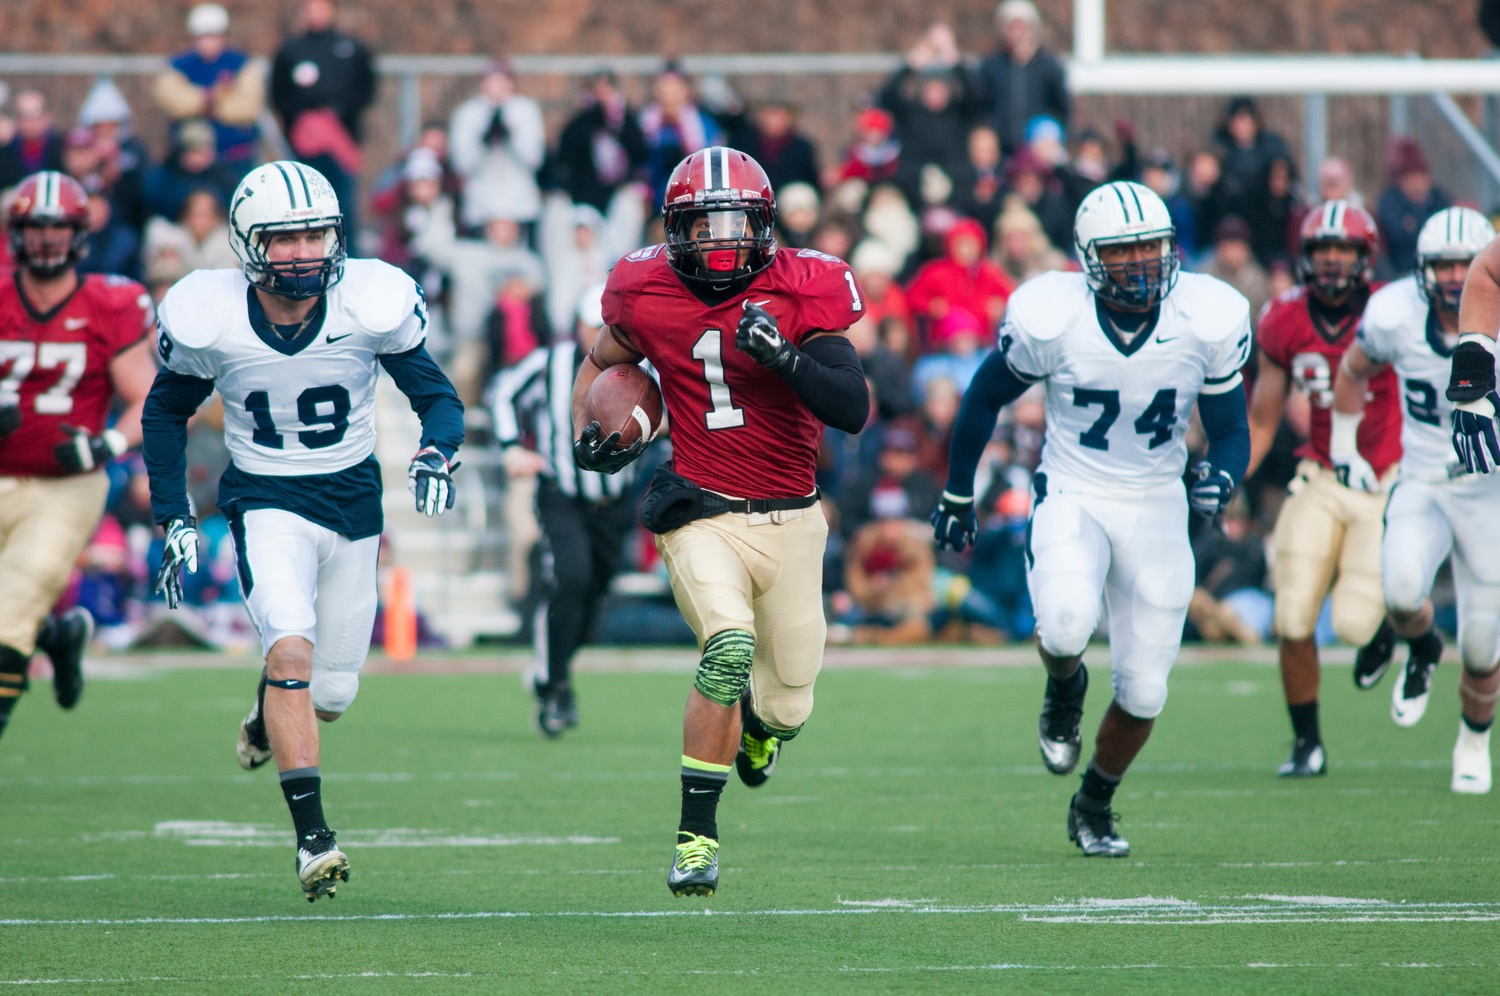 Senior receiver Andrew Fischer, pictured above in the Crimson's victory in 2014 over Yale, recorded the game-winning touchdown to top the Elis, 31-24.